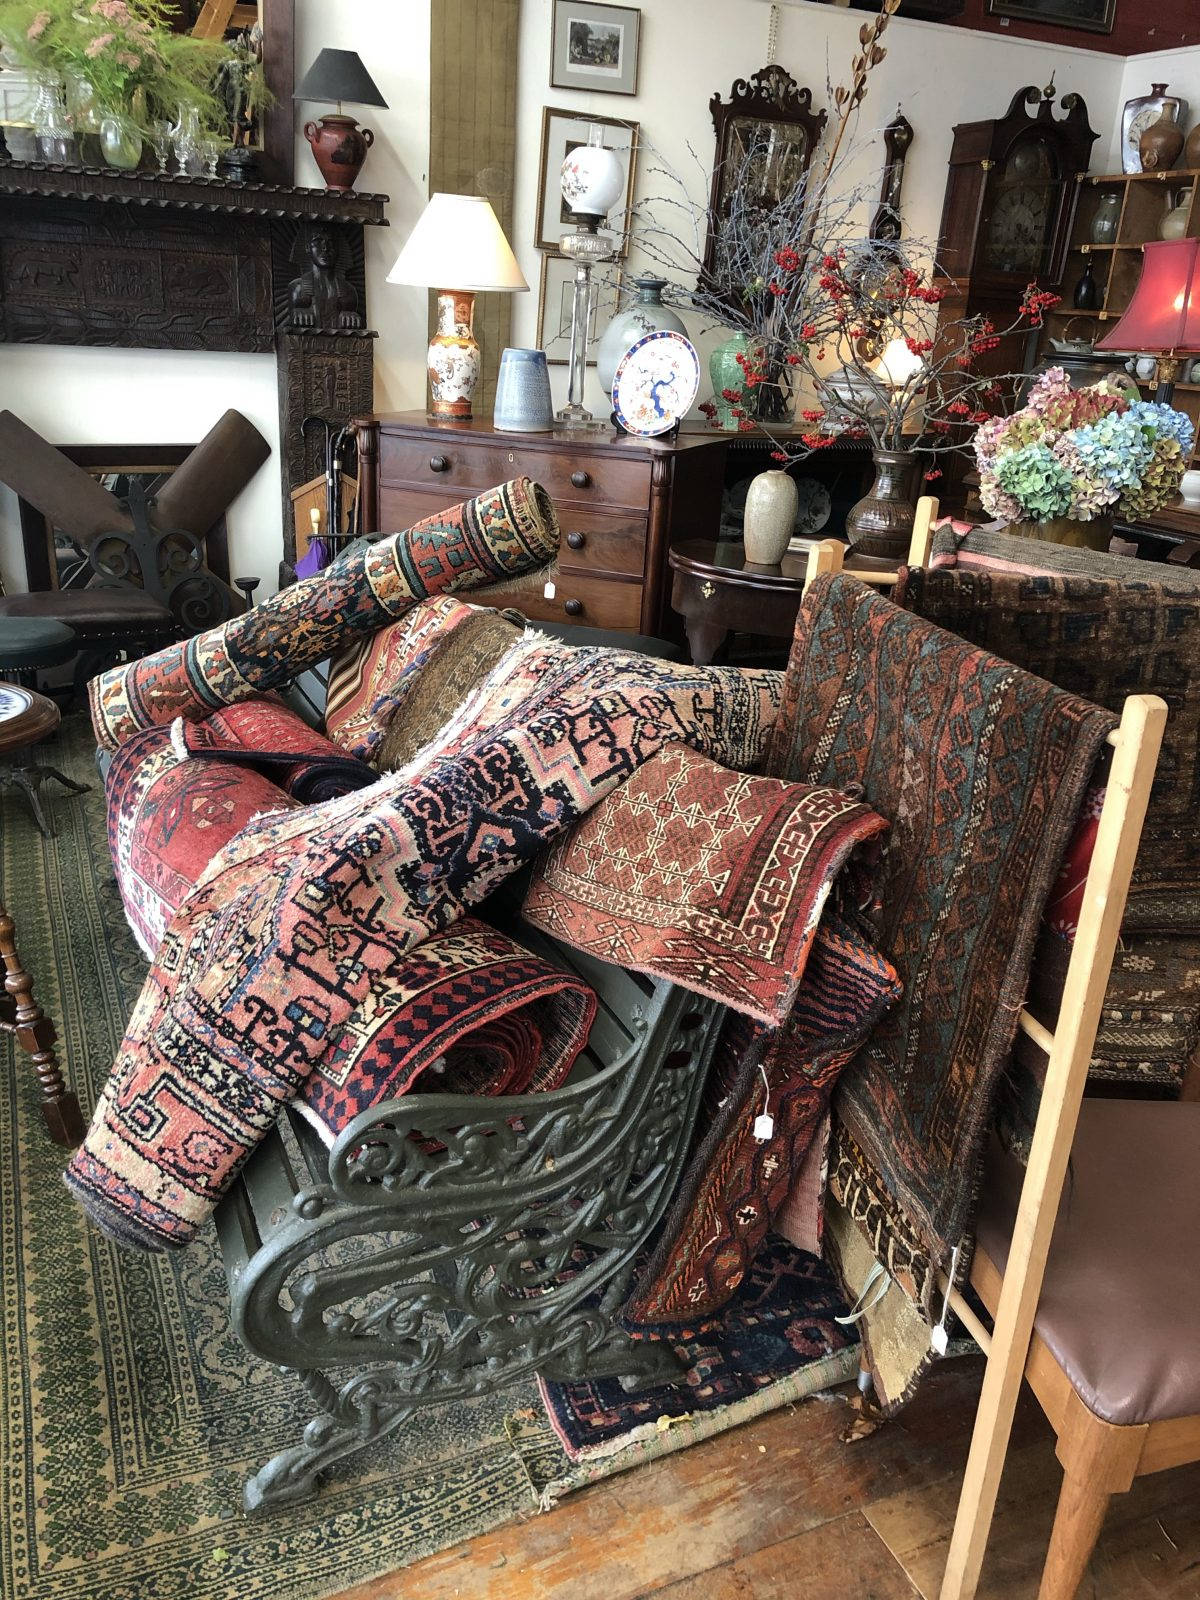 168. Hand Knotted Rugs